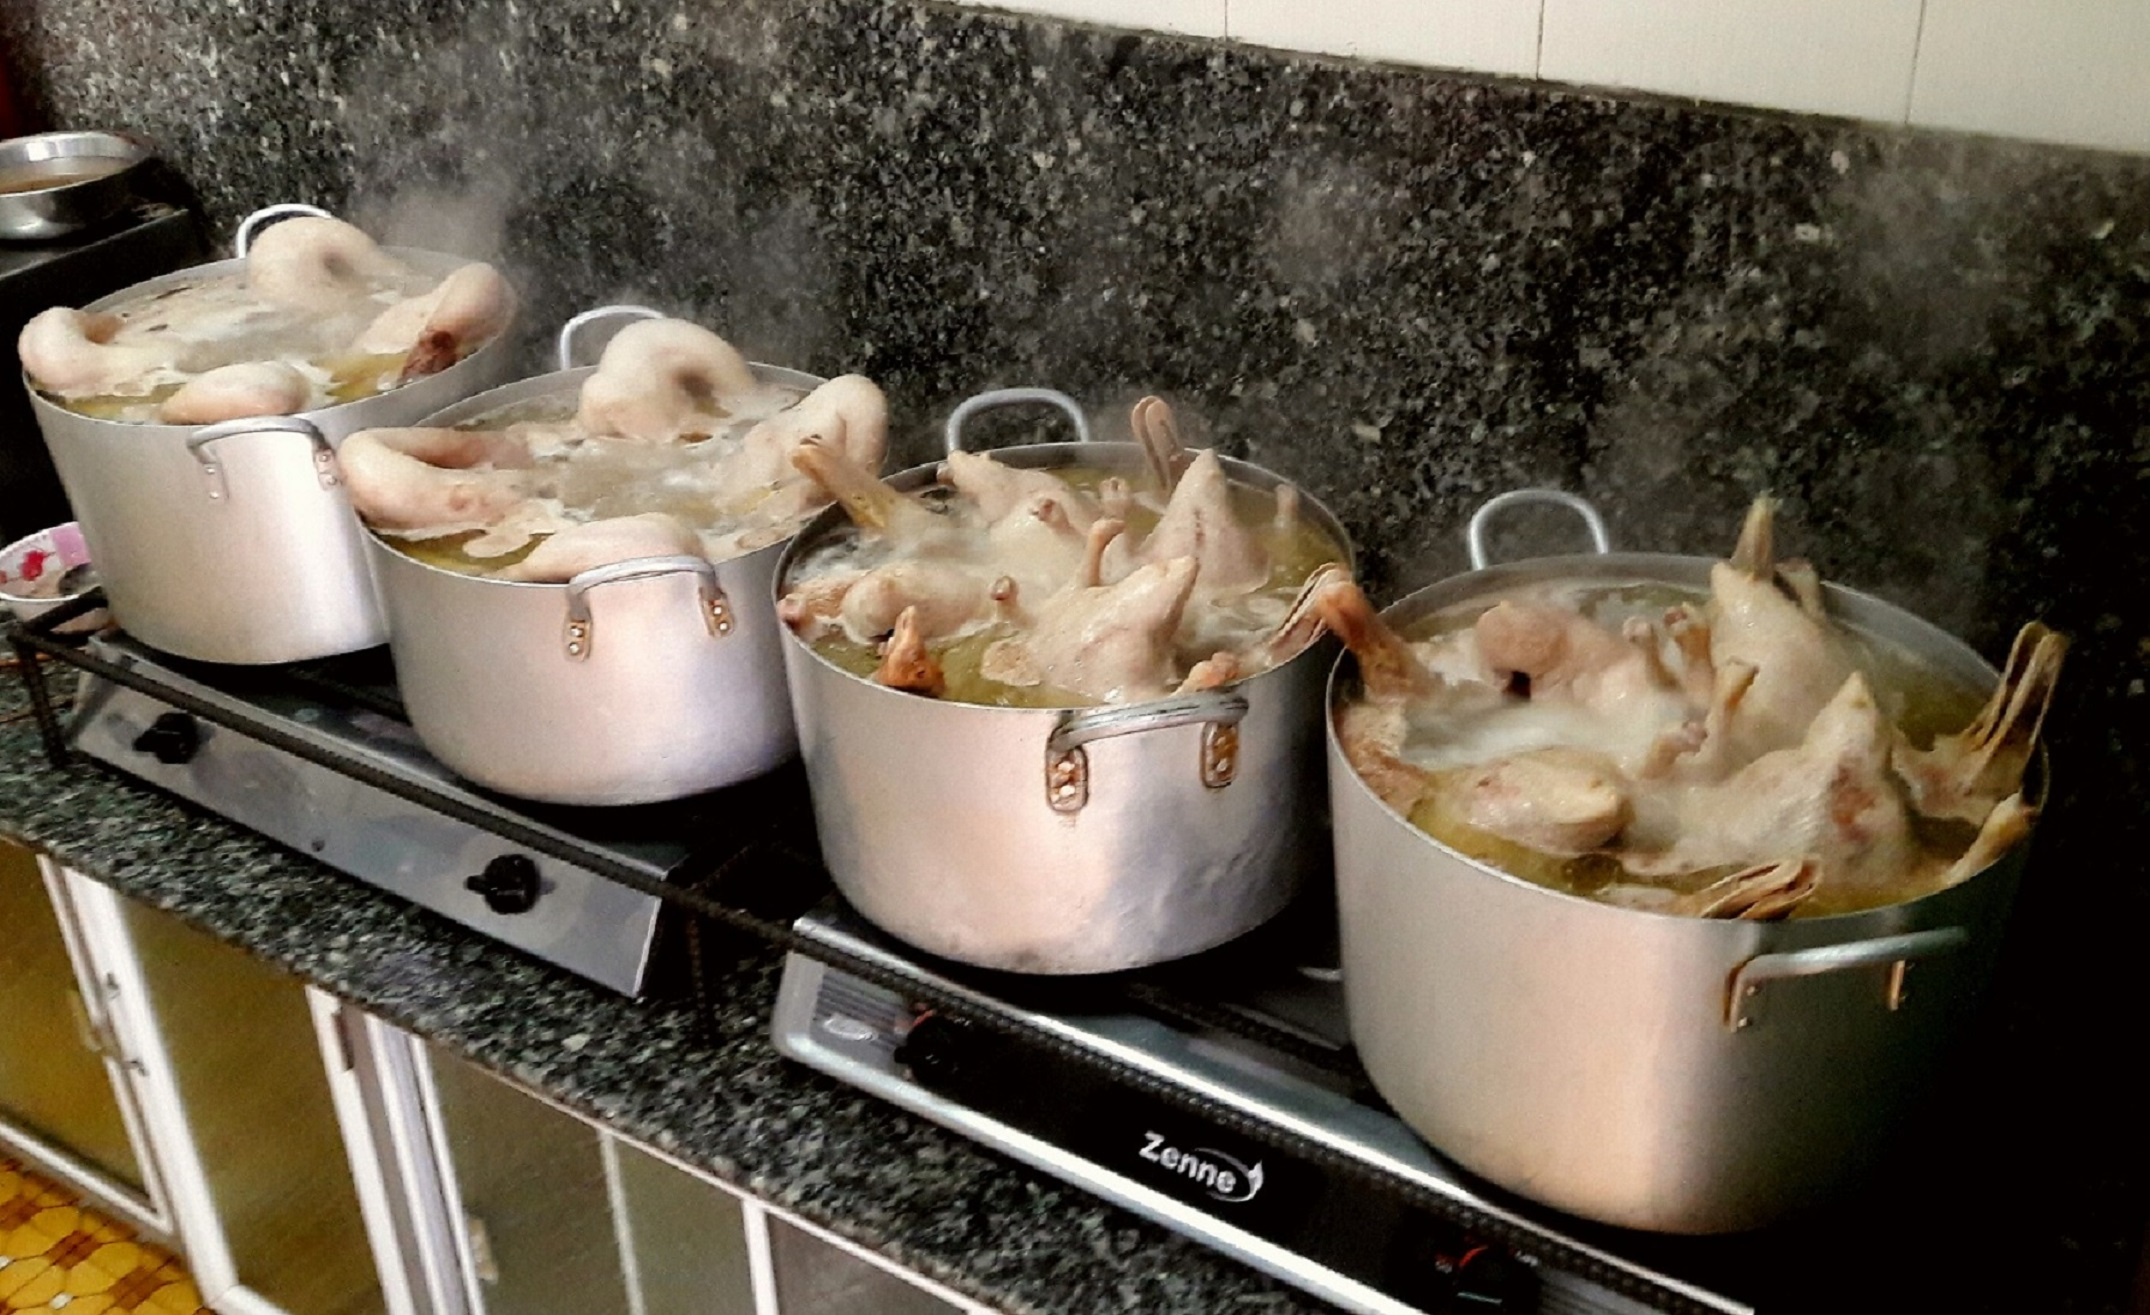 Ducks are cooked on stoves at a duck porridge shop in Da Lat City, Lam Dong Province, Vietnam. Photo: Rick Ellis